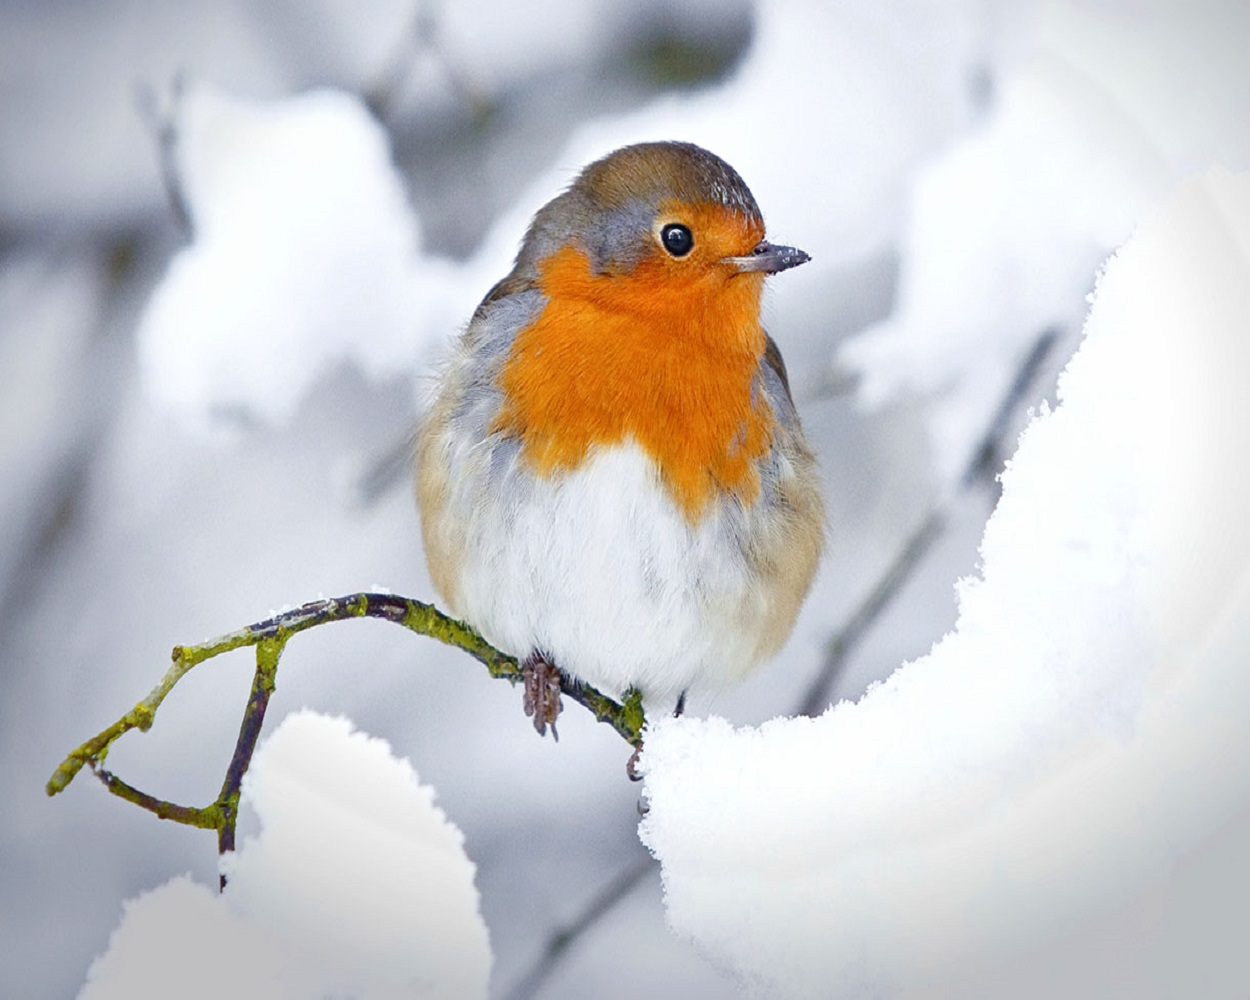 Robin in a winter snow scene